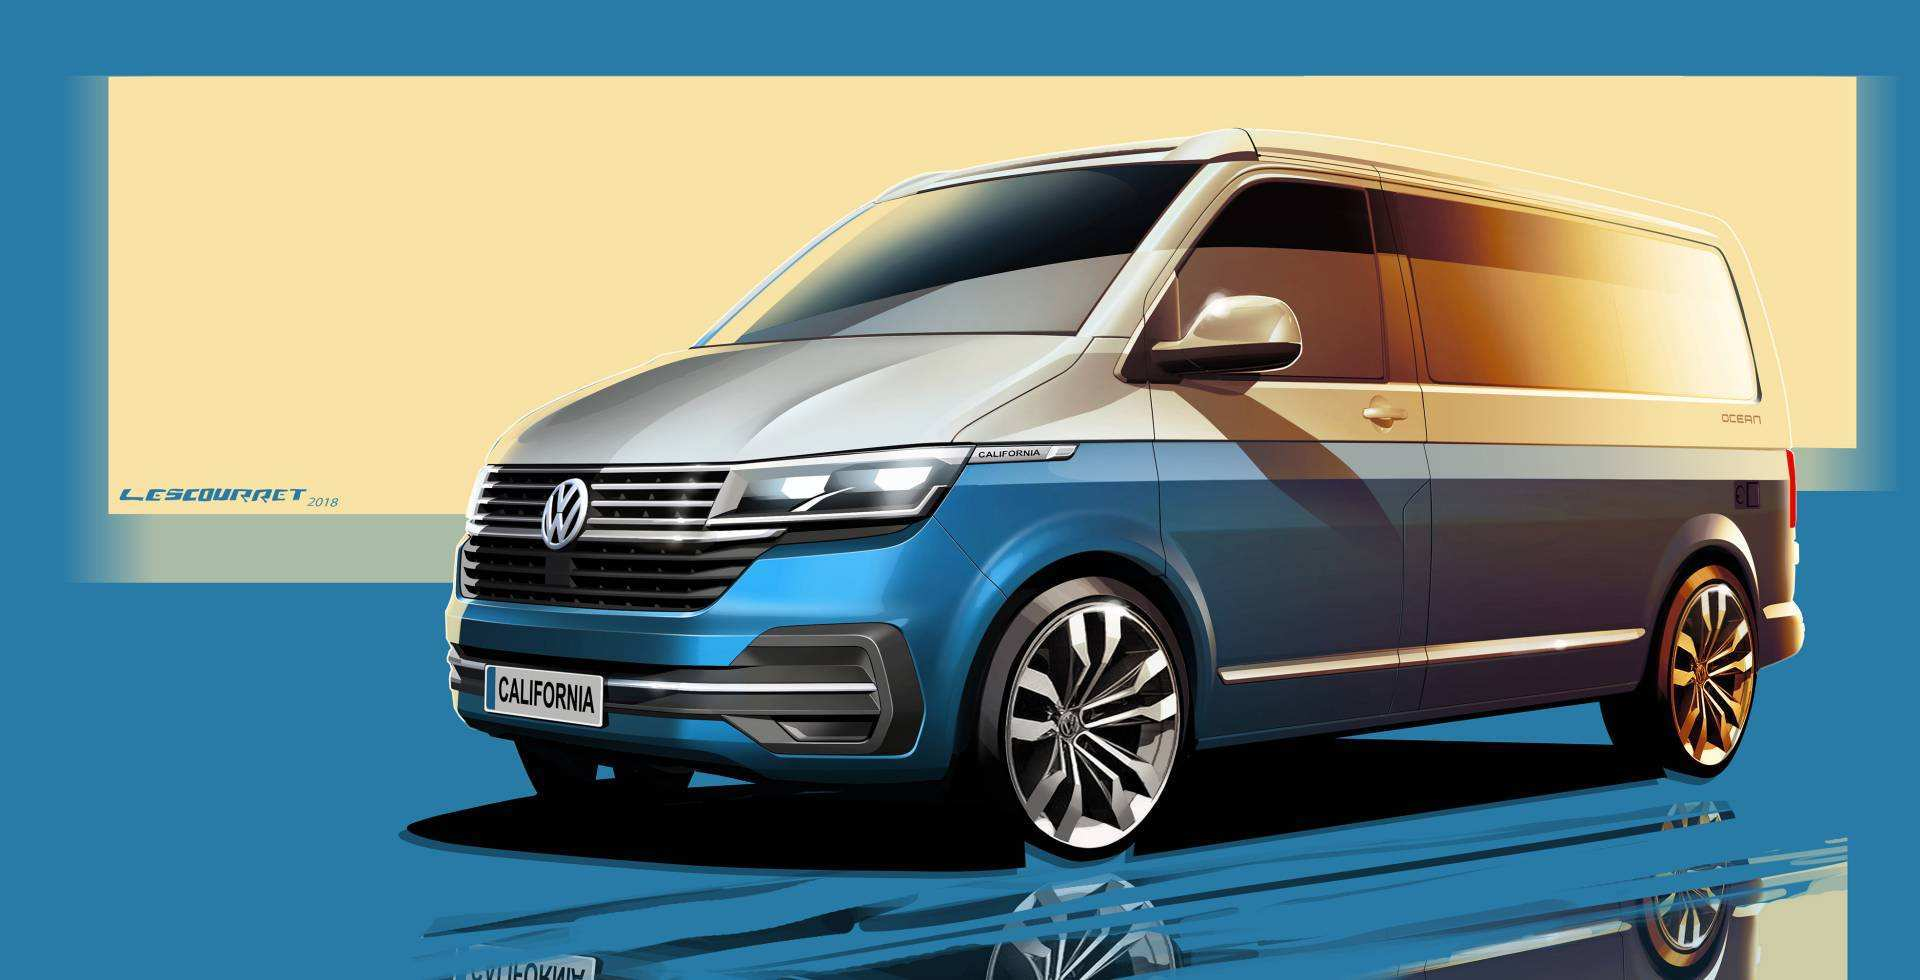 46 Best Review Volkswagen Camper 2020 Images with Volkswagen Camper 2020